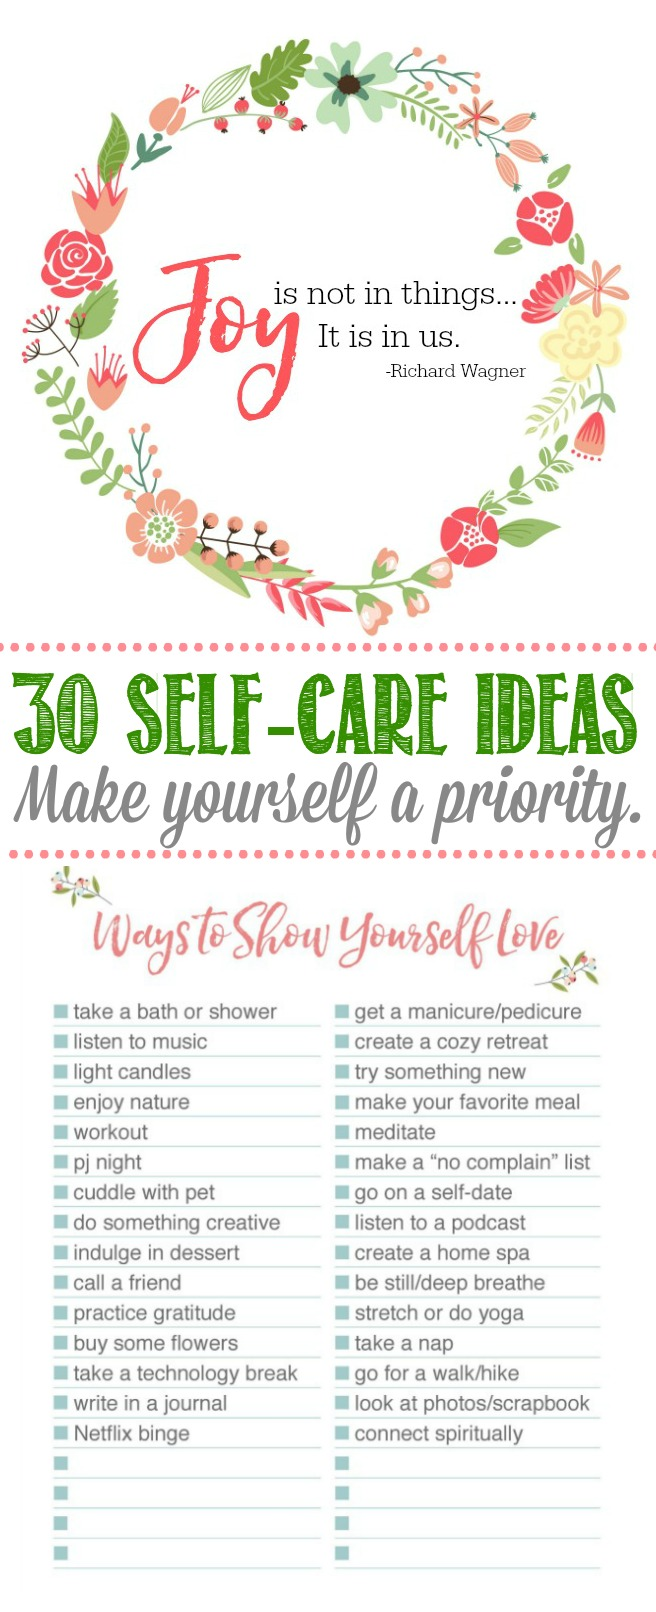 Self-care Ideas.  Free printable list of 30 self-care ideas and how to get started on practicing self-care.